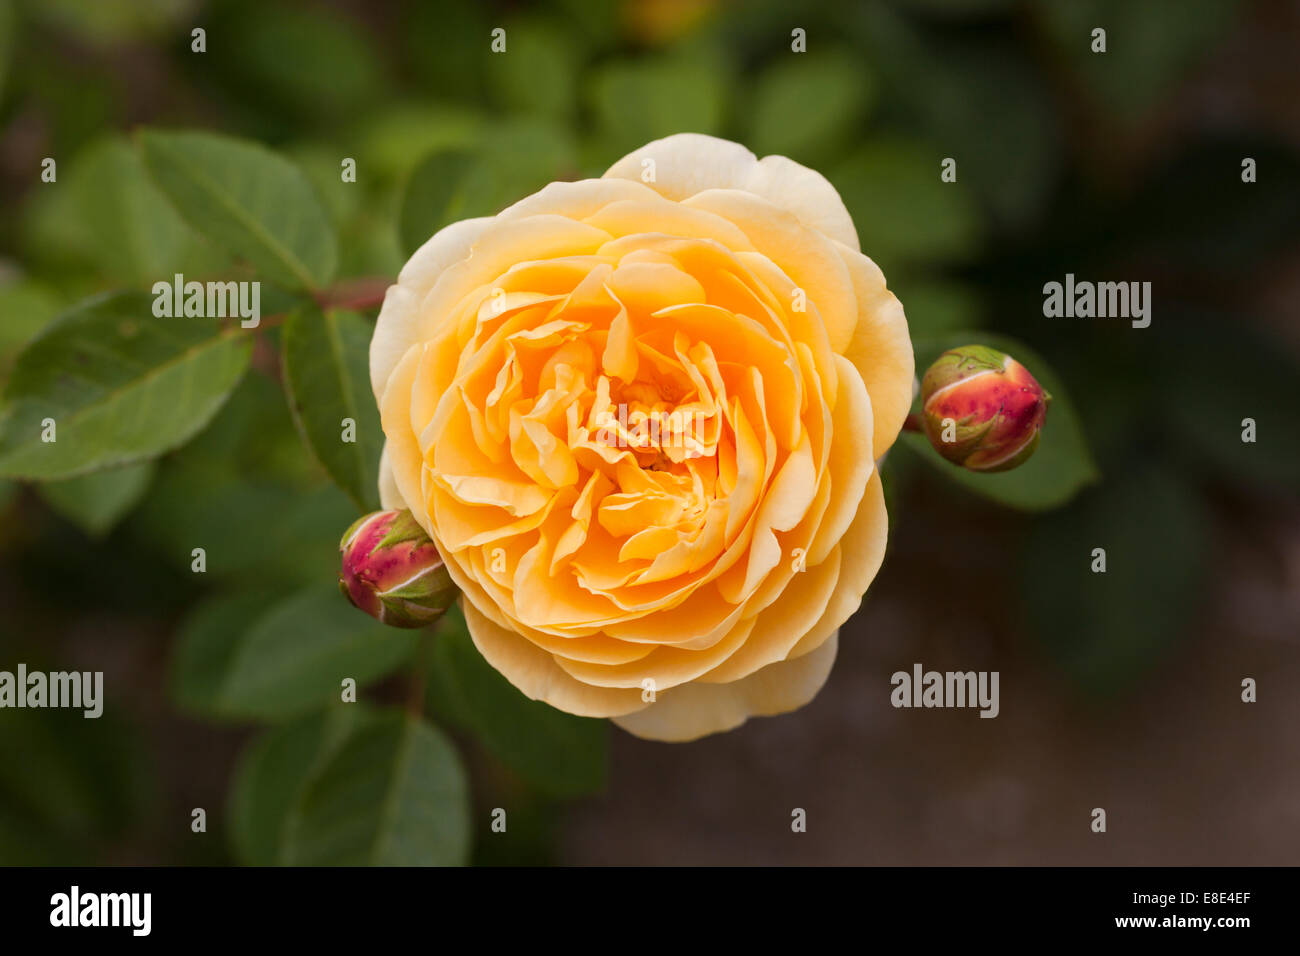 Close up of yellow Rosa / Rose Teasing Georgia against a blurred background Stock Photo